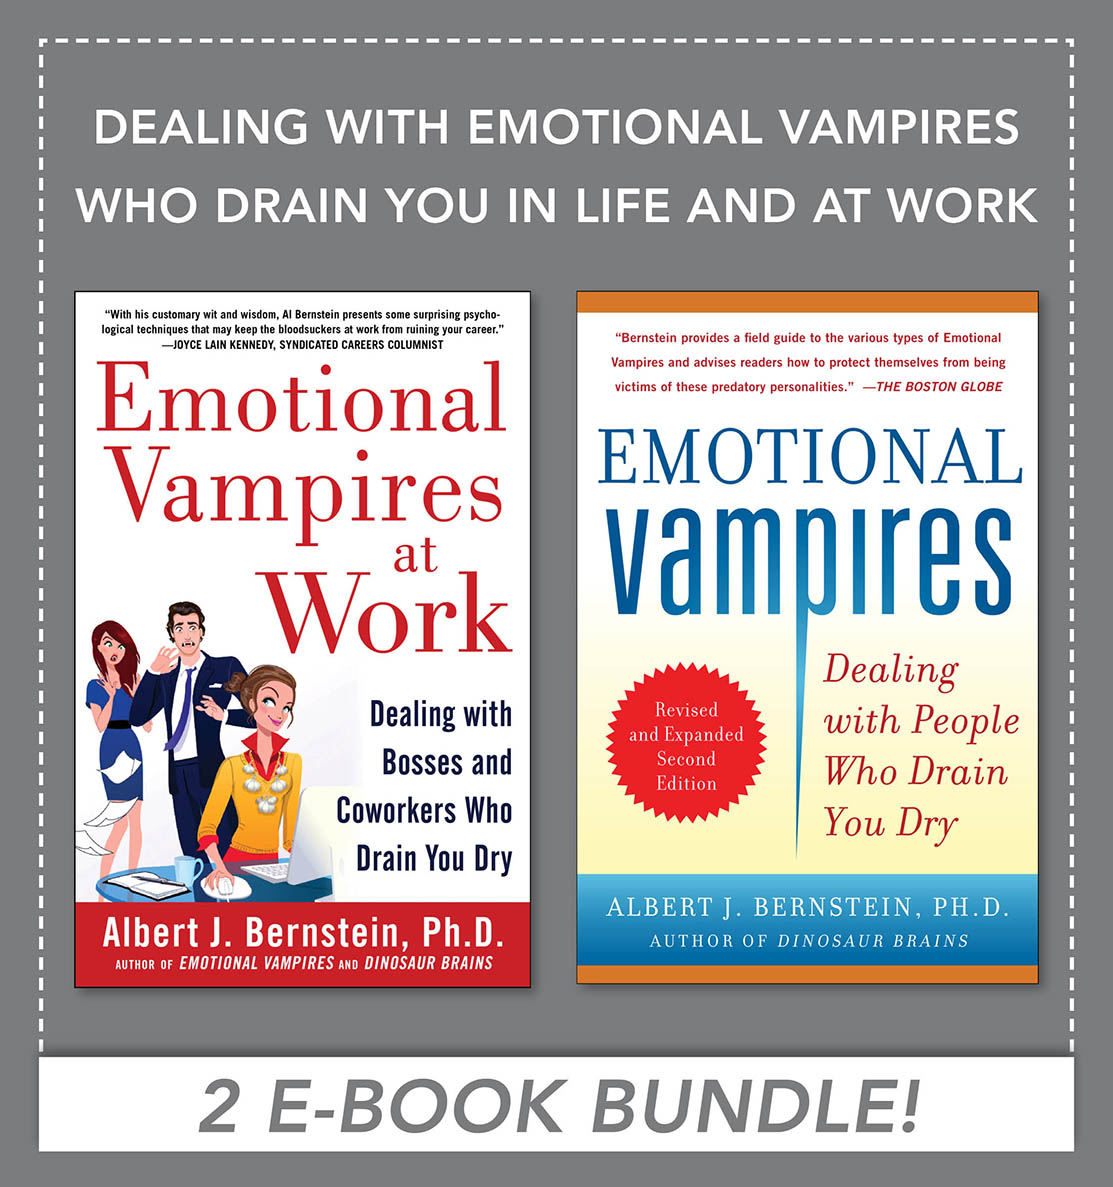 Download Ebook Dealing with Emotional Vampires Who Drain You in Life and at Work (EBOOK BUNDLE) by Albert J. Bernstein Pdf